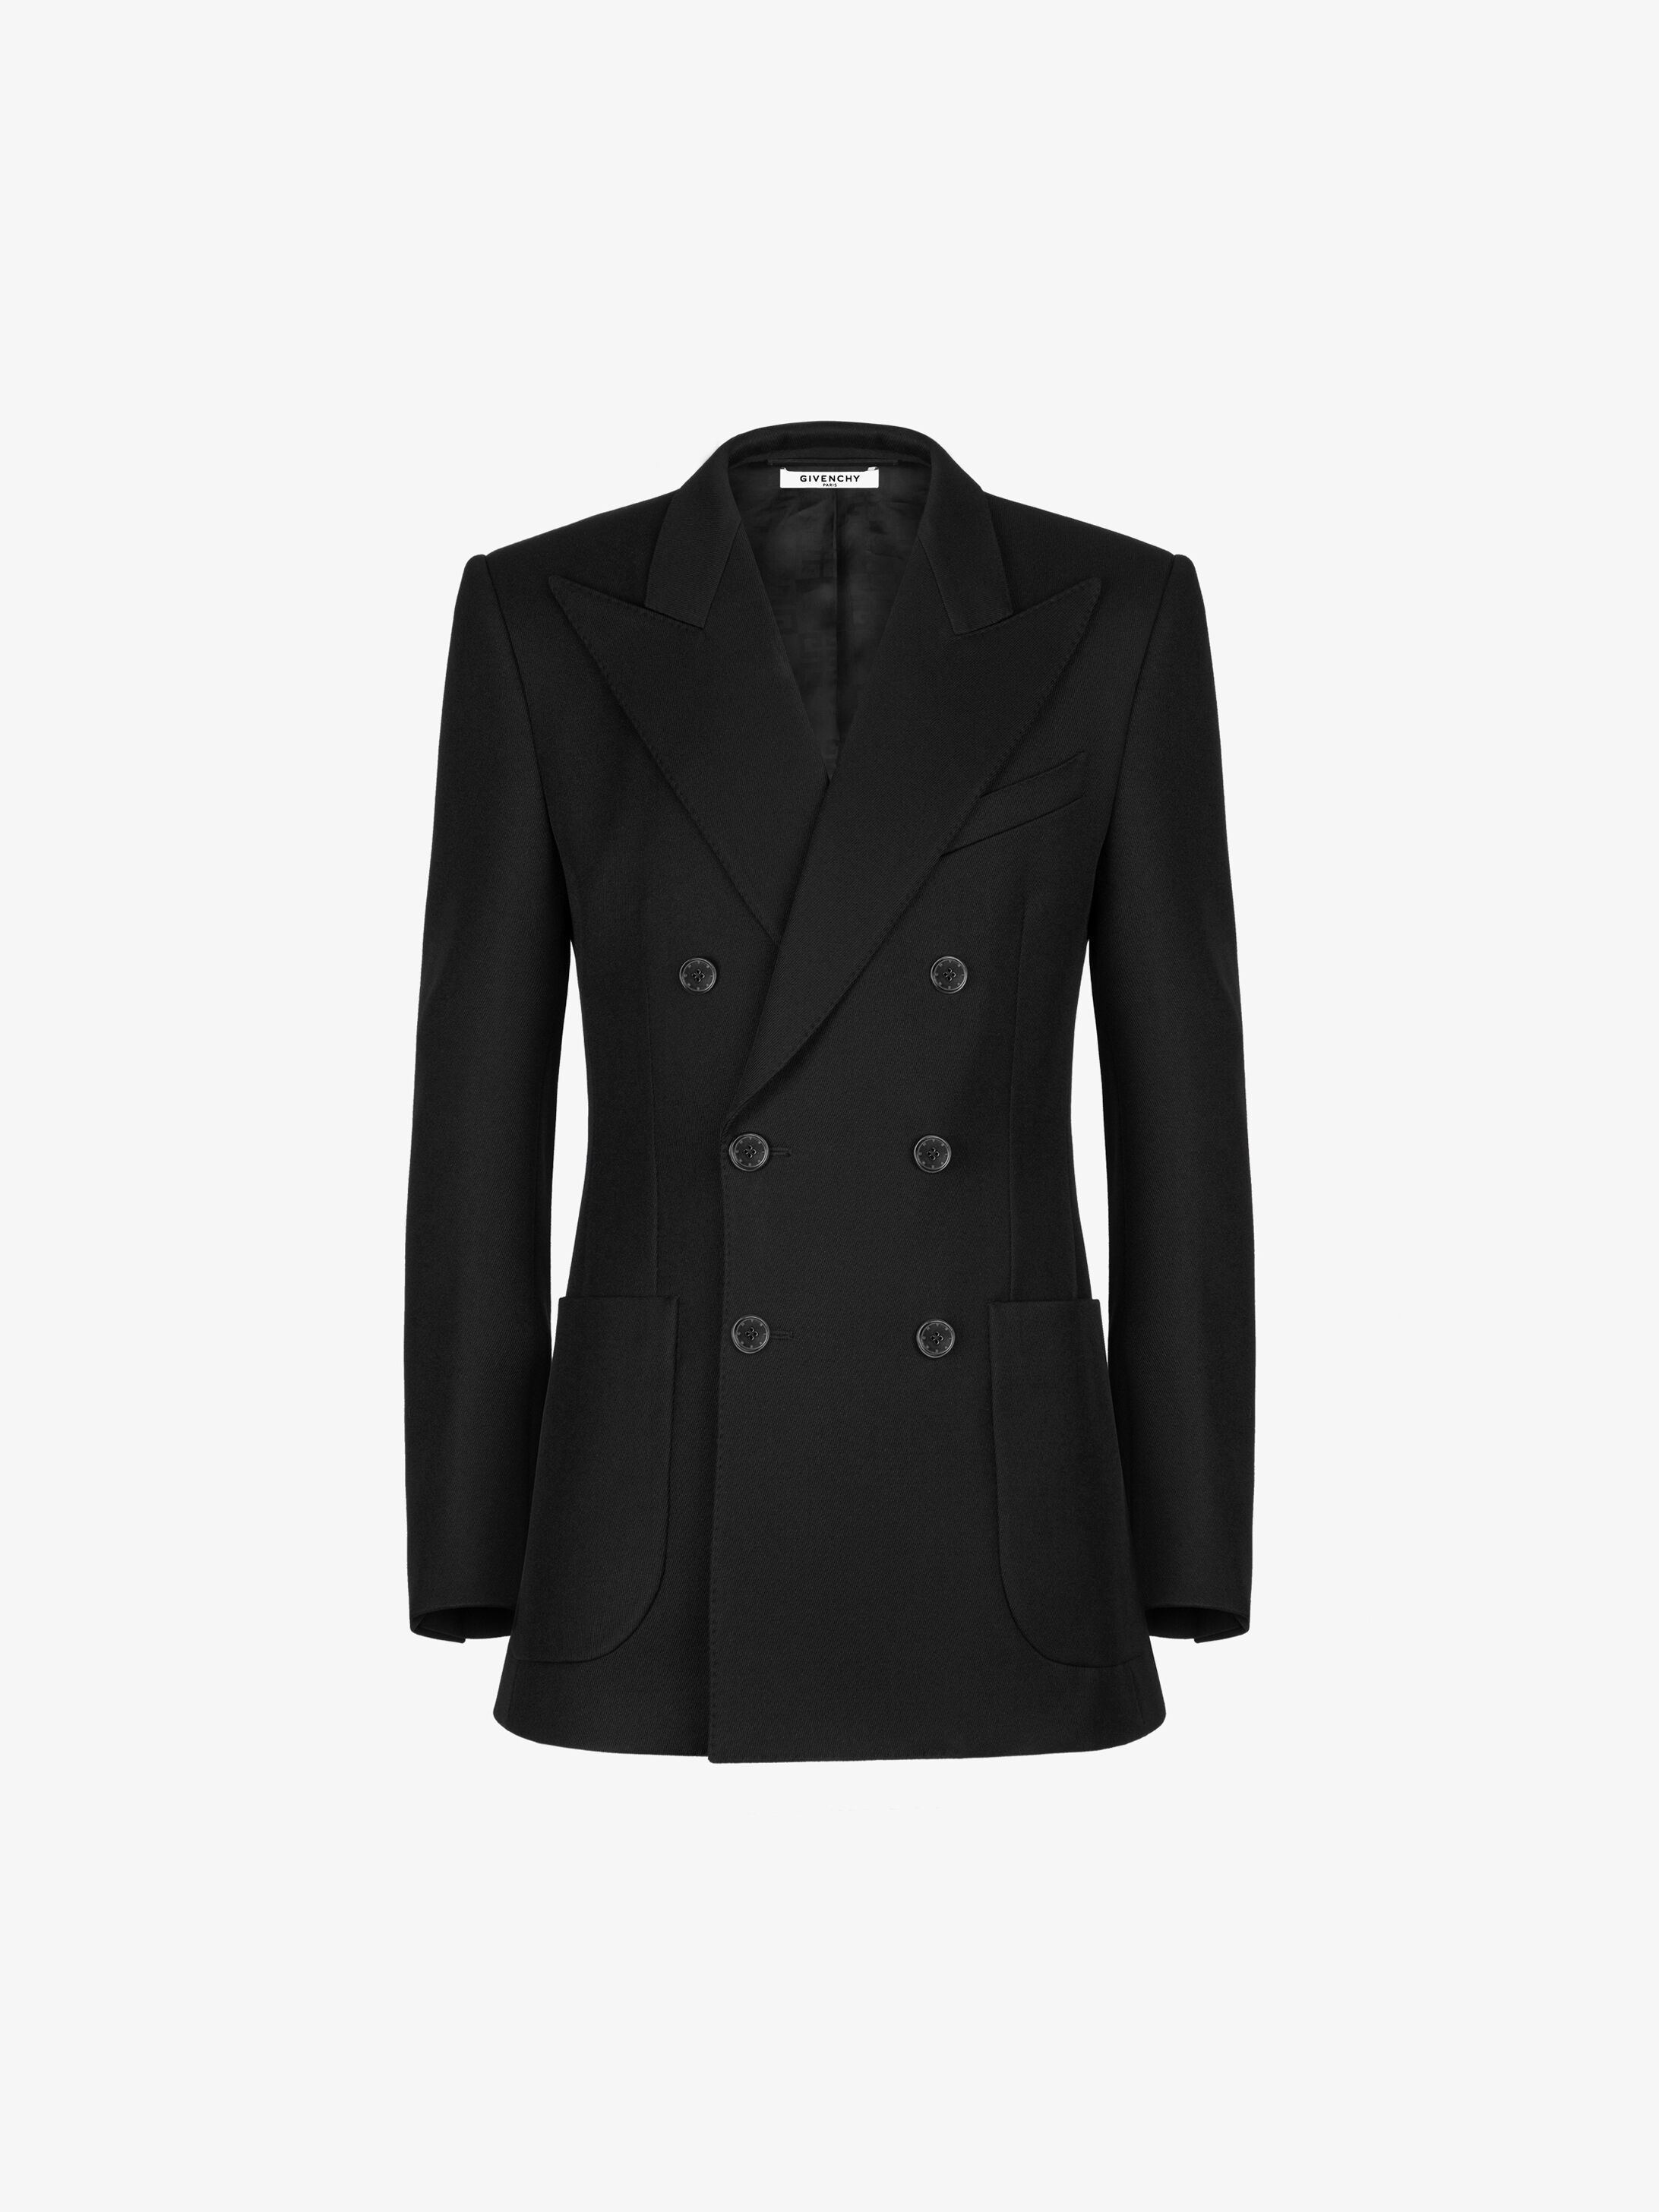 224cef51d Men's Suits and Blazers collection by Givenchy. | GIVENCHY Paris